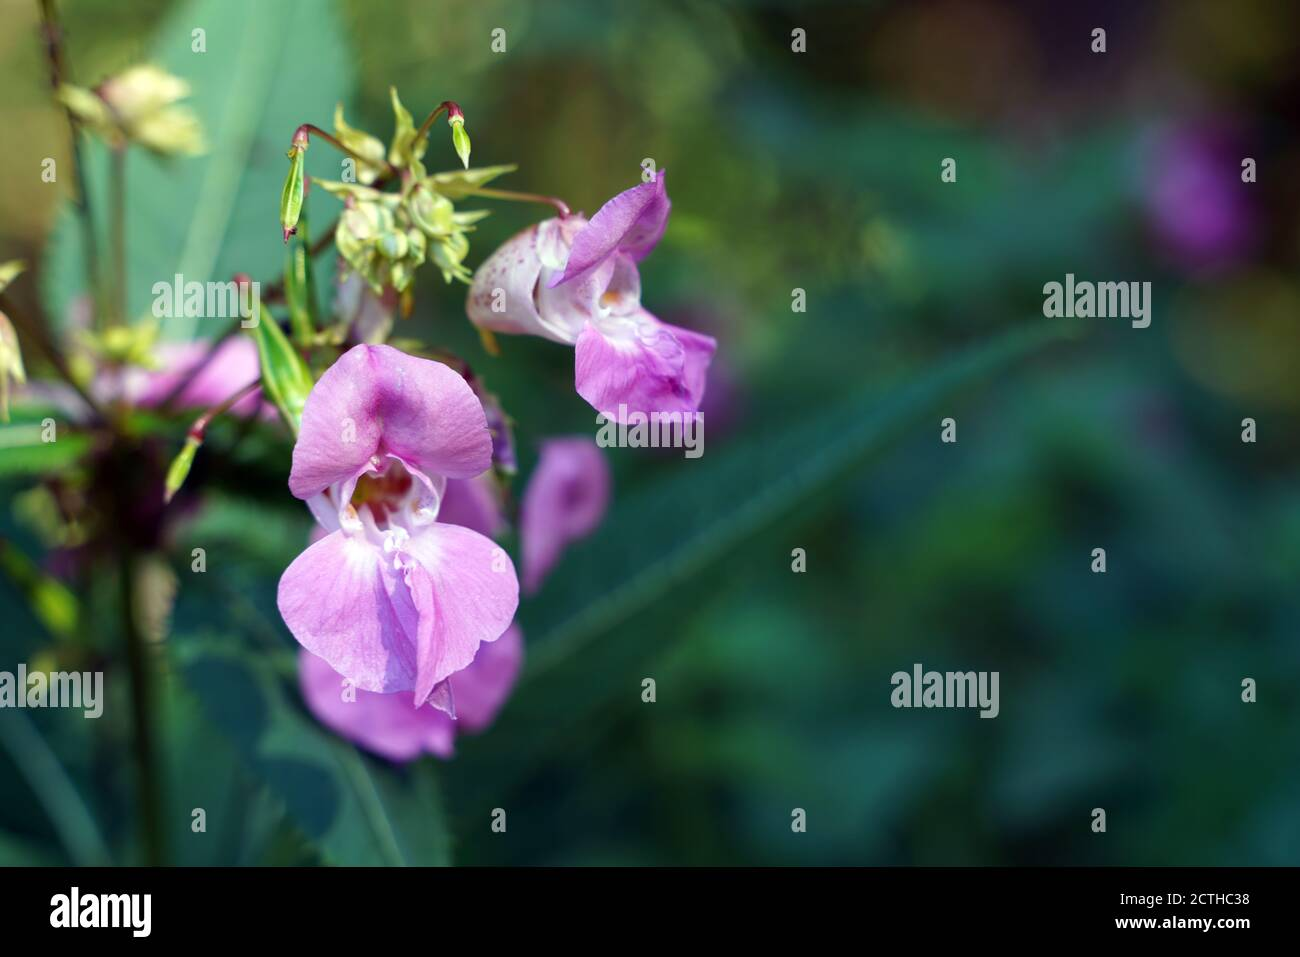 Pink flowering balsam at the edge Stock Photo